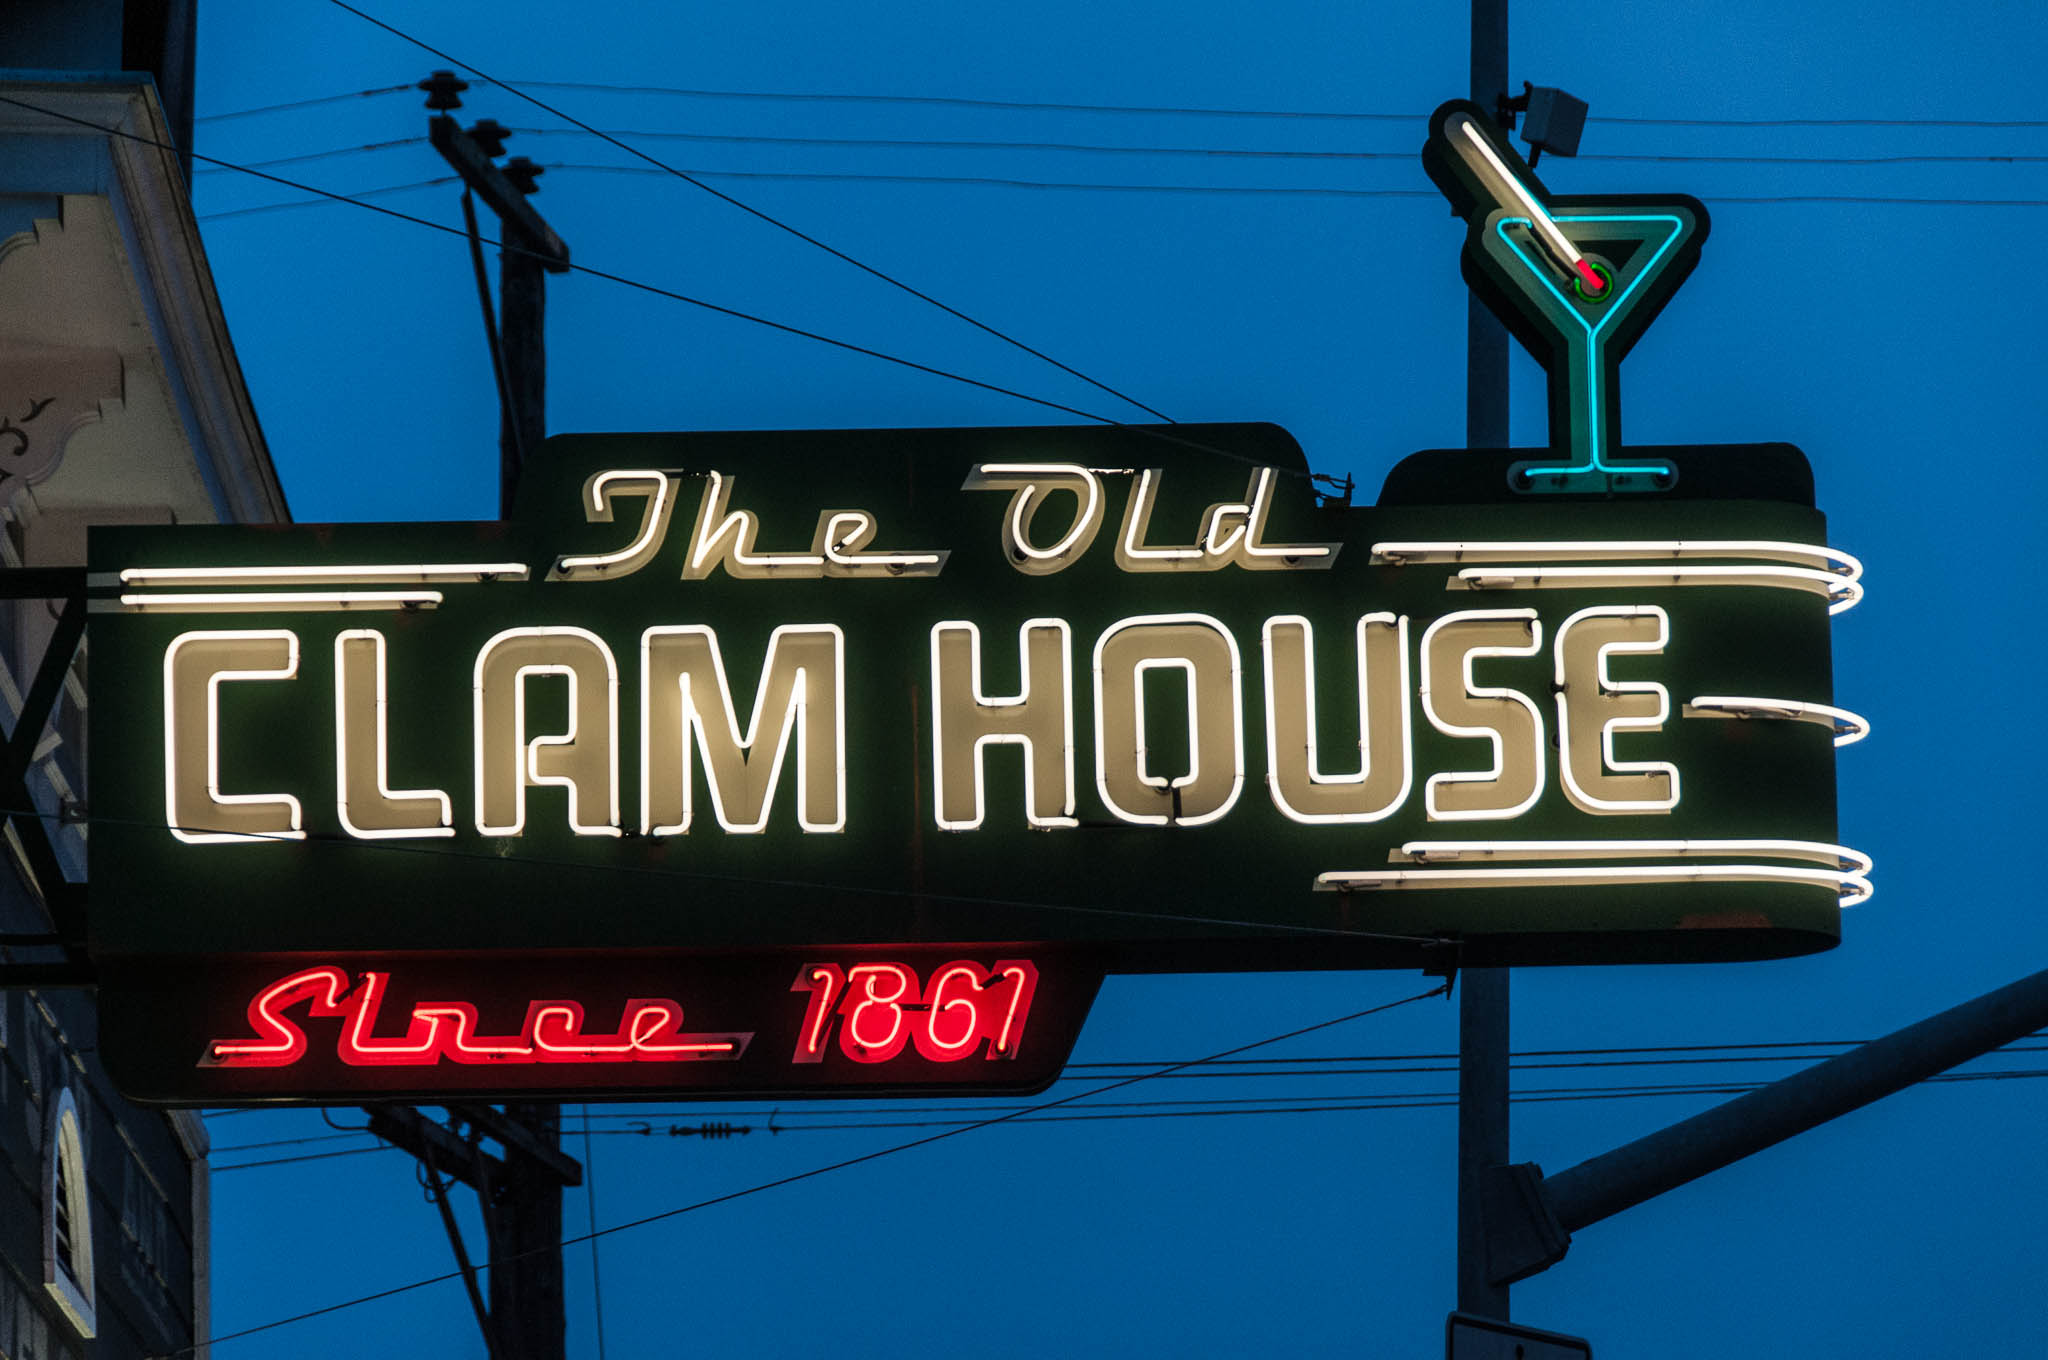 The Clam House in Bayview